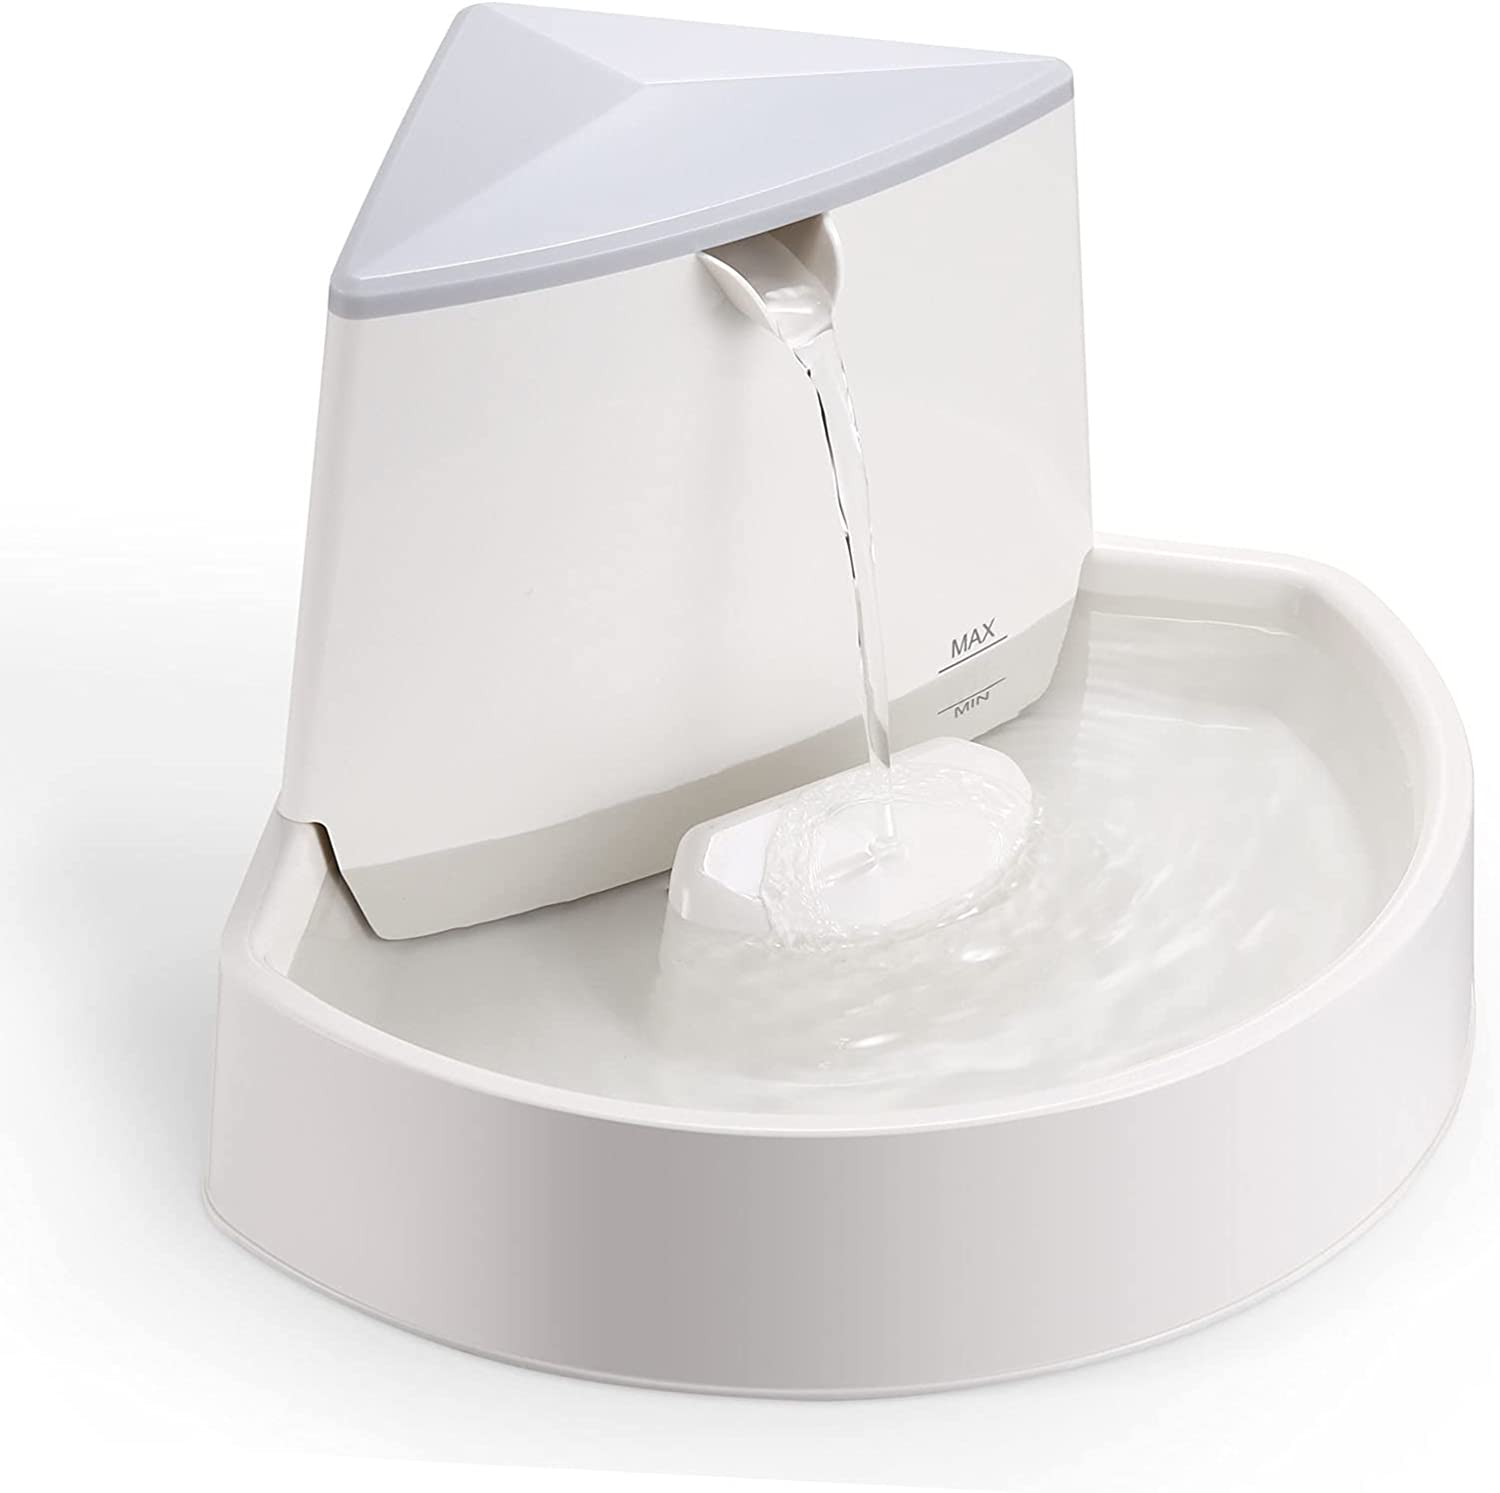 Phoenix Mall Now on sale Botitu Pet Cat Drinking Fountain Double Circul Filter Automatic